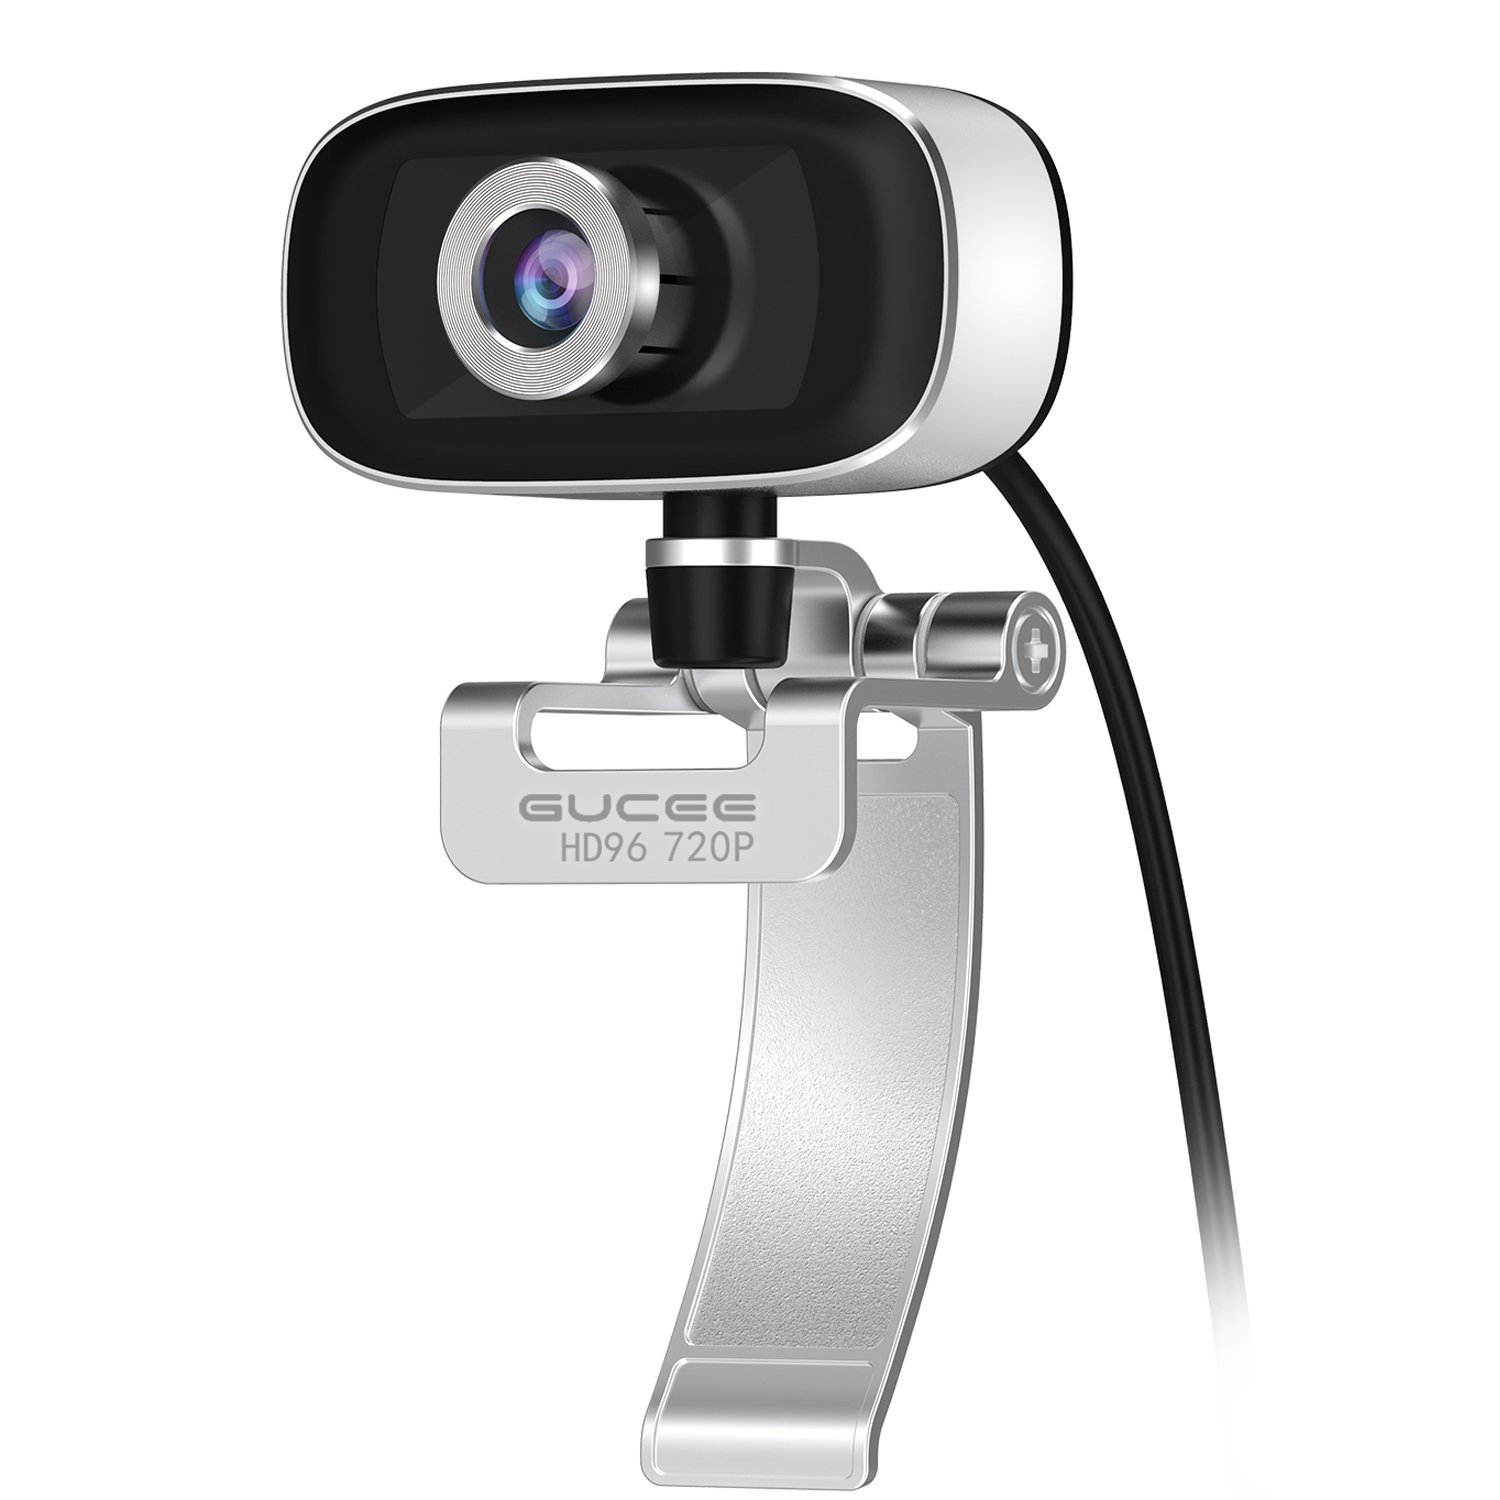 GUCEE HD96 720P HD Webcam with Tripod Ready Base (Tripod Not Included), Web Camera HD Microphone Wide Angle USB Plug and Play, Widescreen Calling Recording for Skype, Win 7 / 8 / 10, Apple Mac OS X by iRush (Image #1)